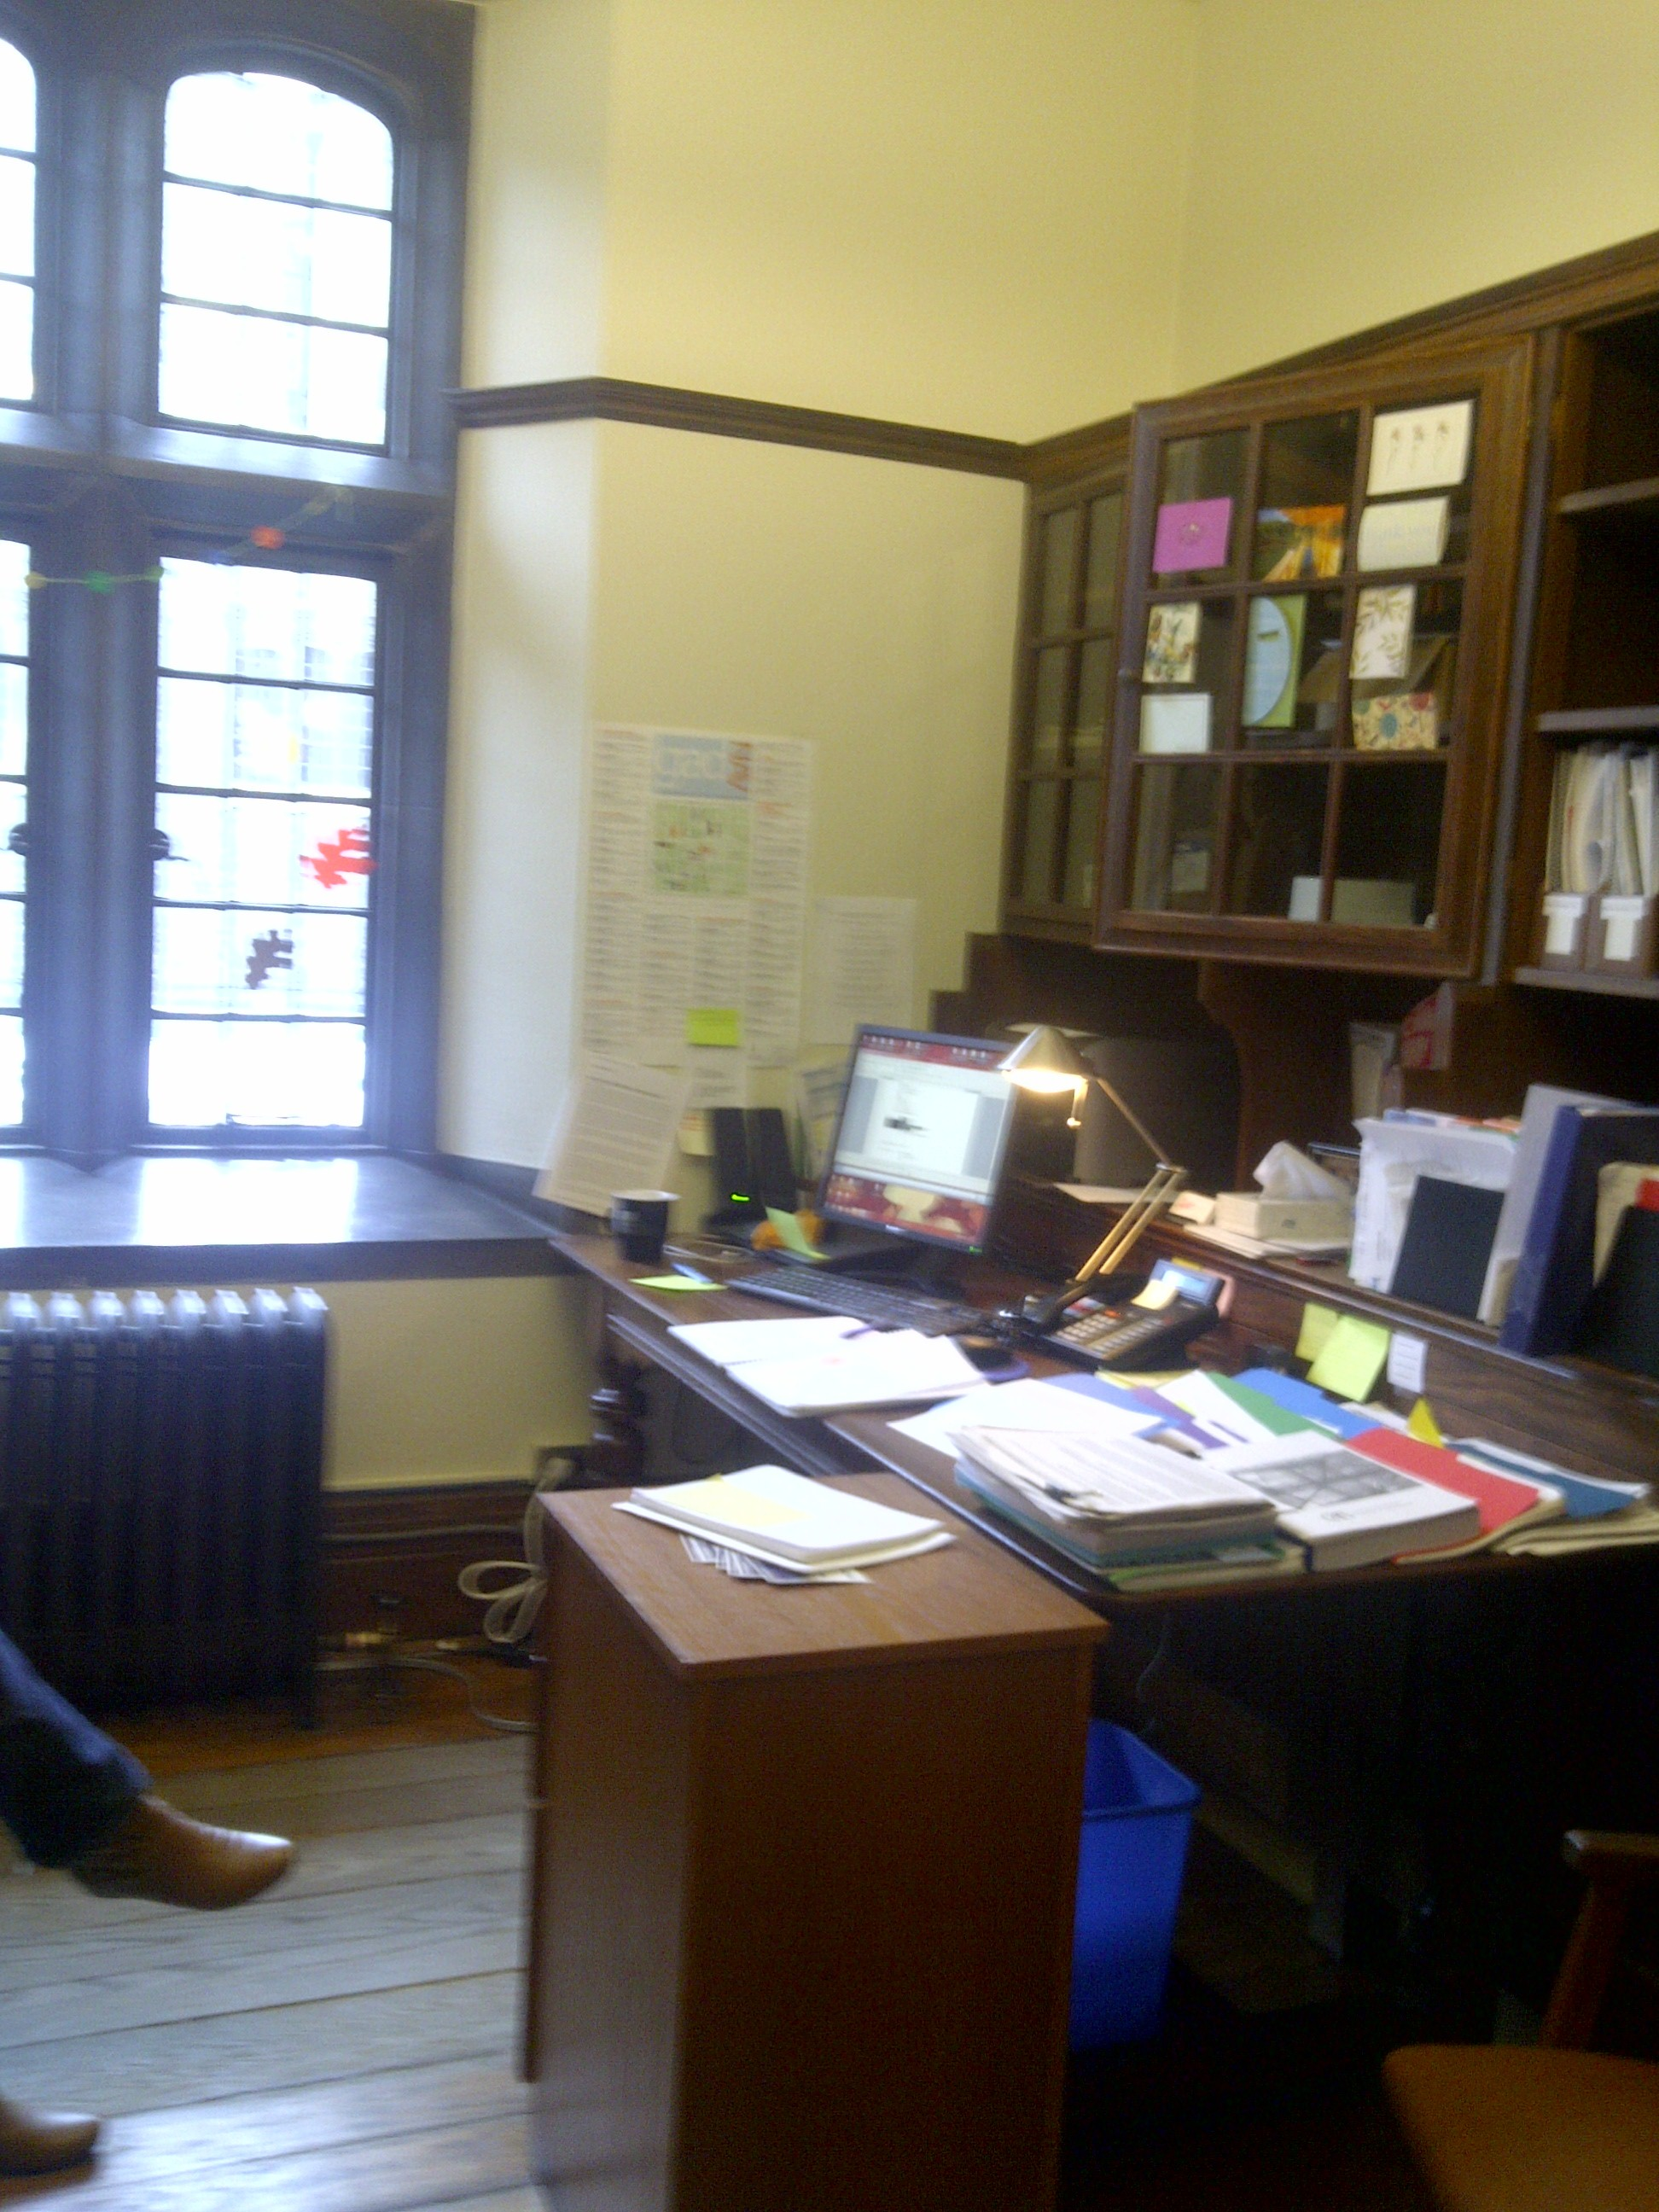 This U0027Harry Potteru0027 Office Needs Help With Feng Shui!